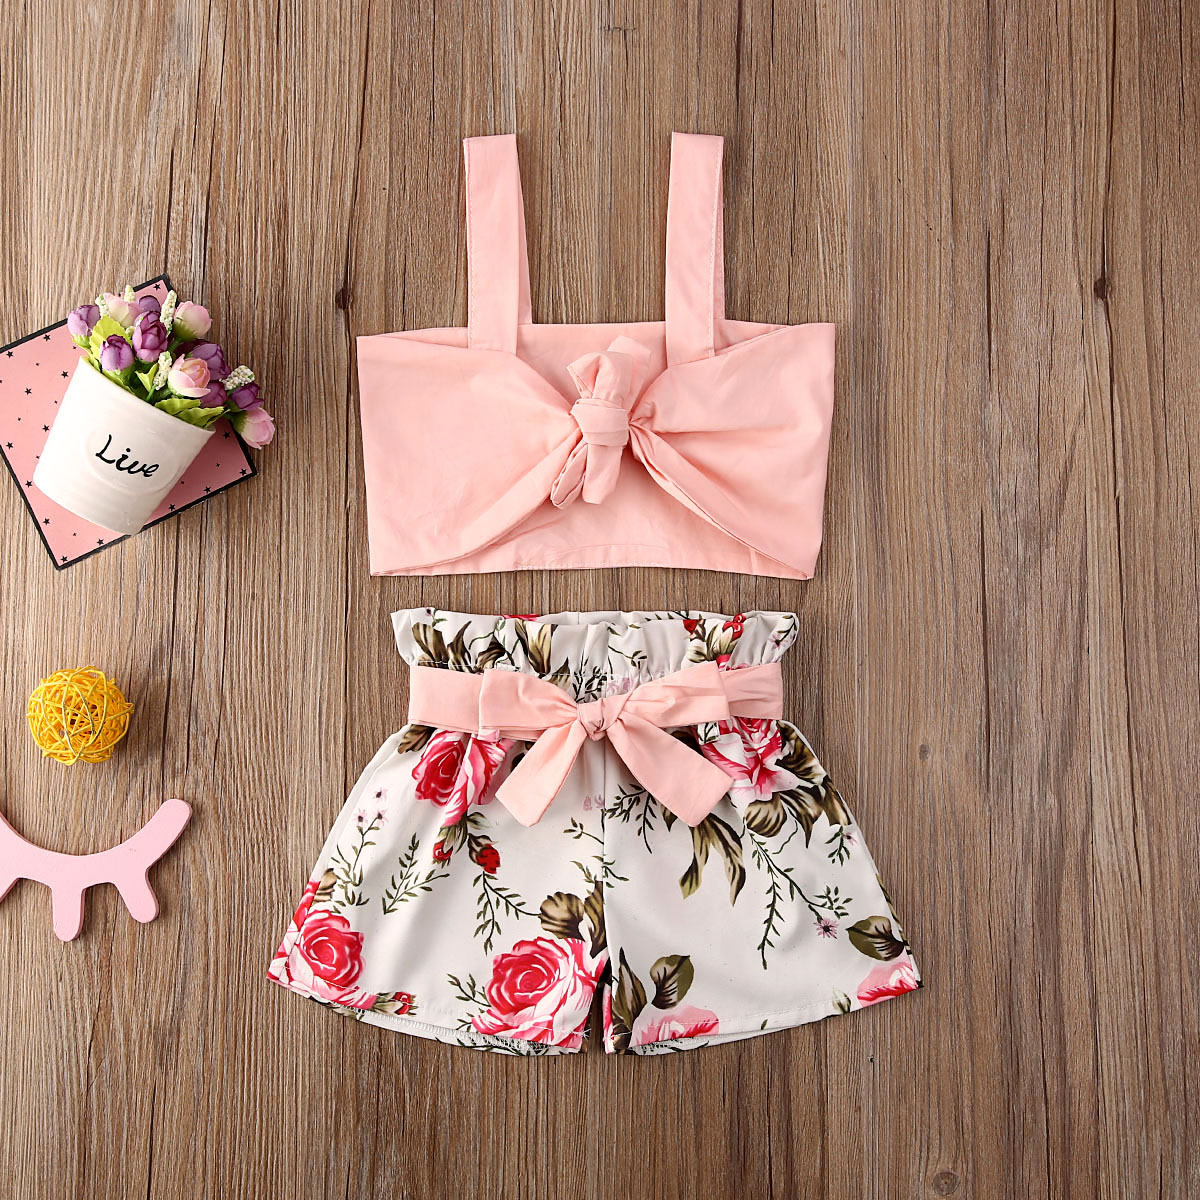 Emmababy Toddler Baby Girl Clothes Summer Solid Color Strap Crop Tops Flower Print Shorts 2Pcs Outfits Casual Clothes Set